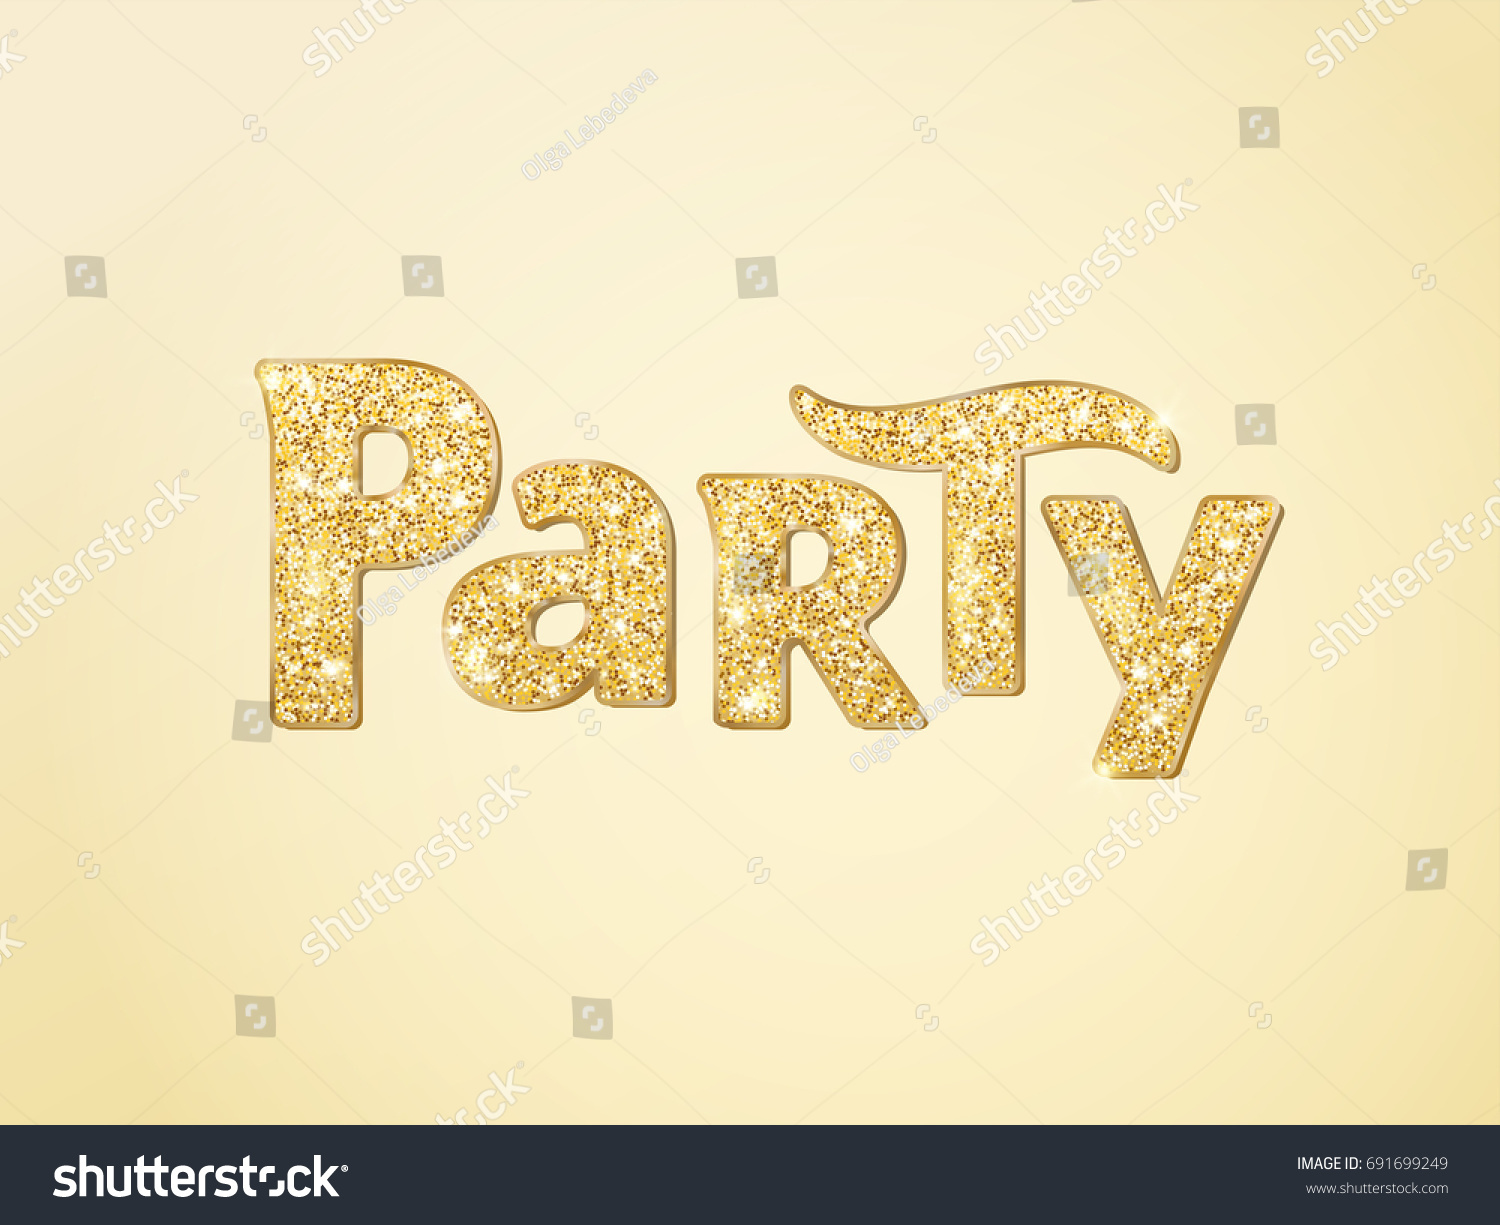 Party Word With Glitter Golden Sparkles Background Typography Great For Christmas And New